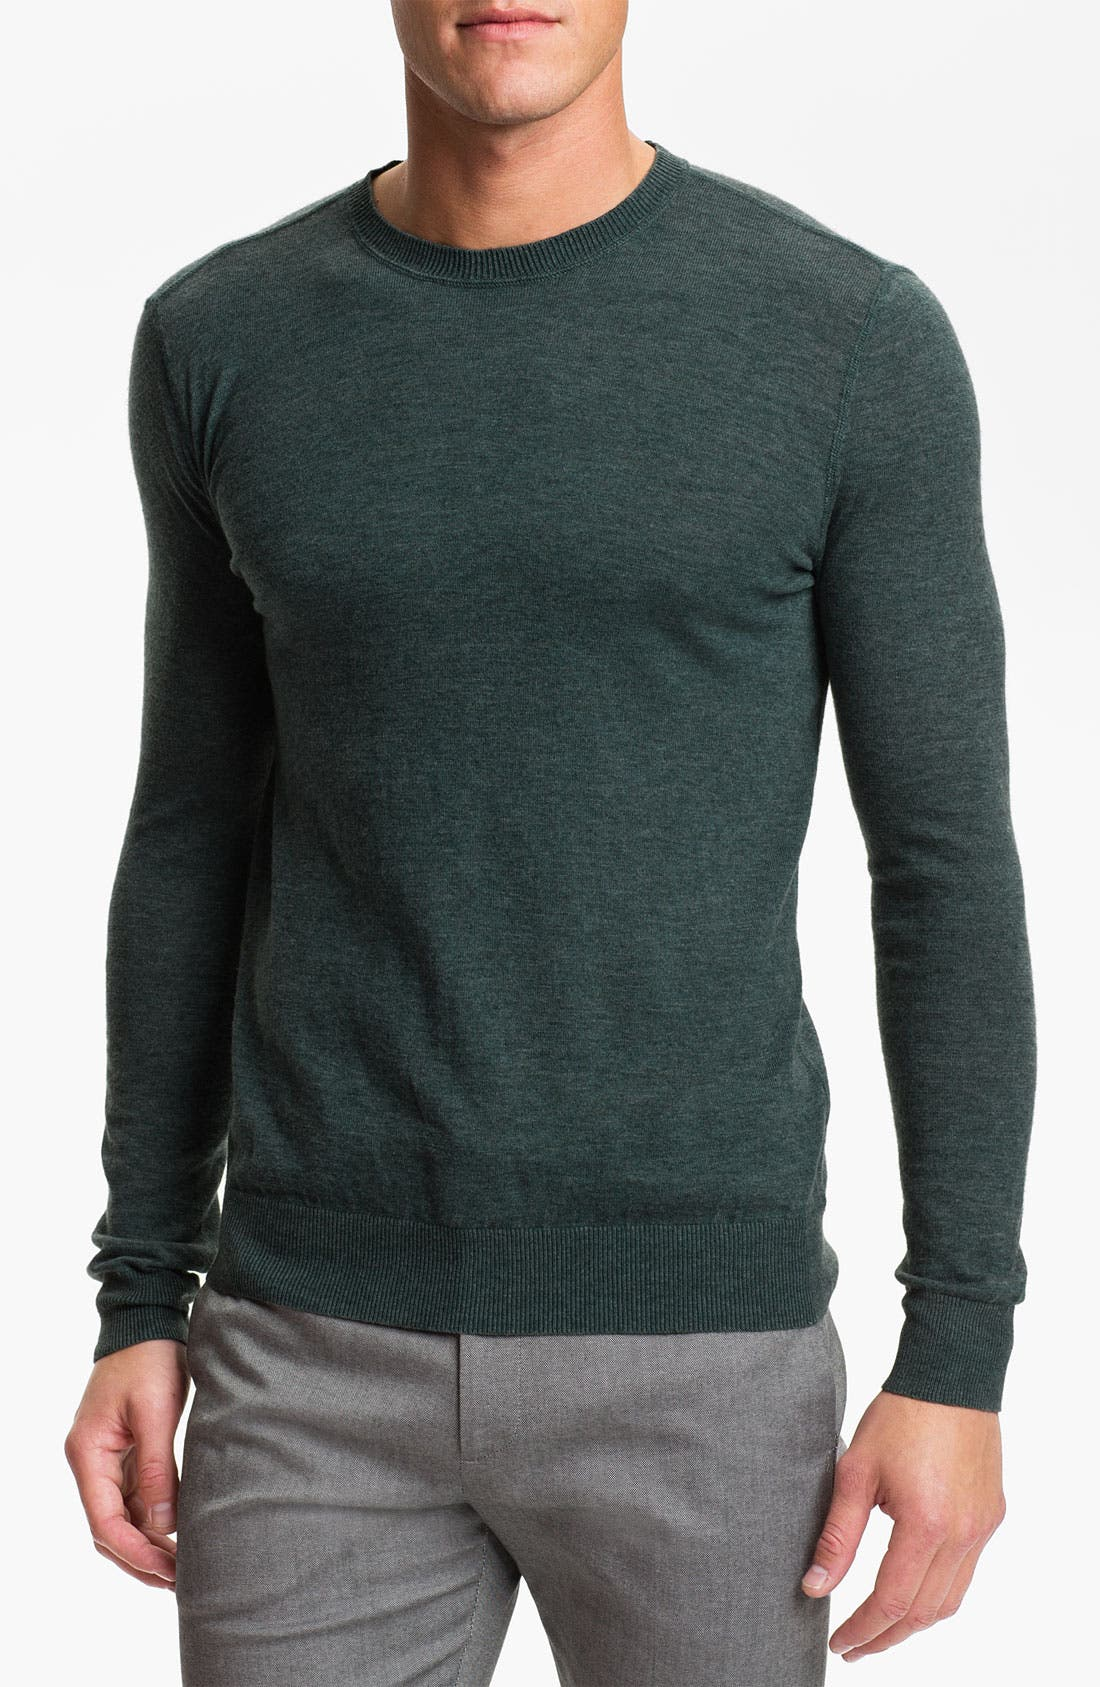 Alternate Image 1 Selected - Theory 'Riland' Stonewash Crewneck Sweater